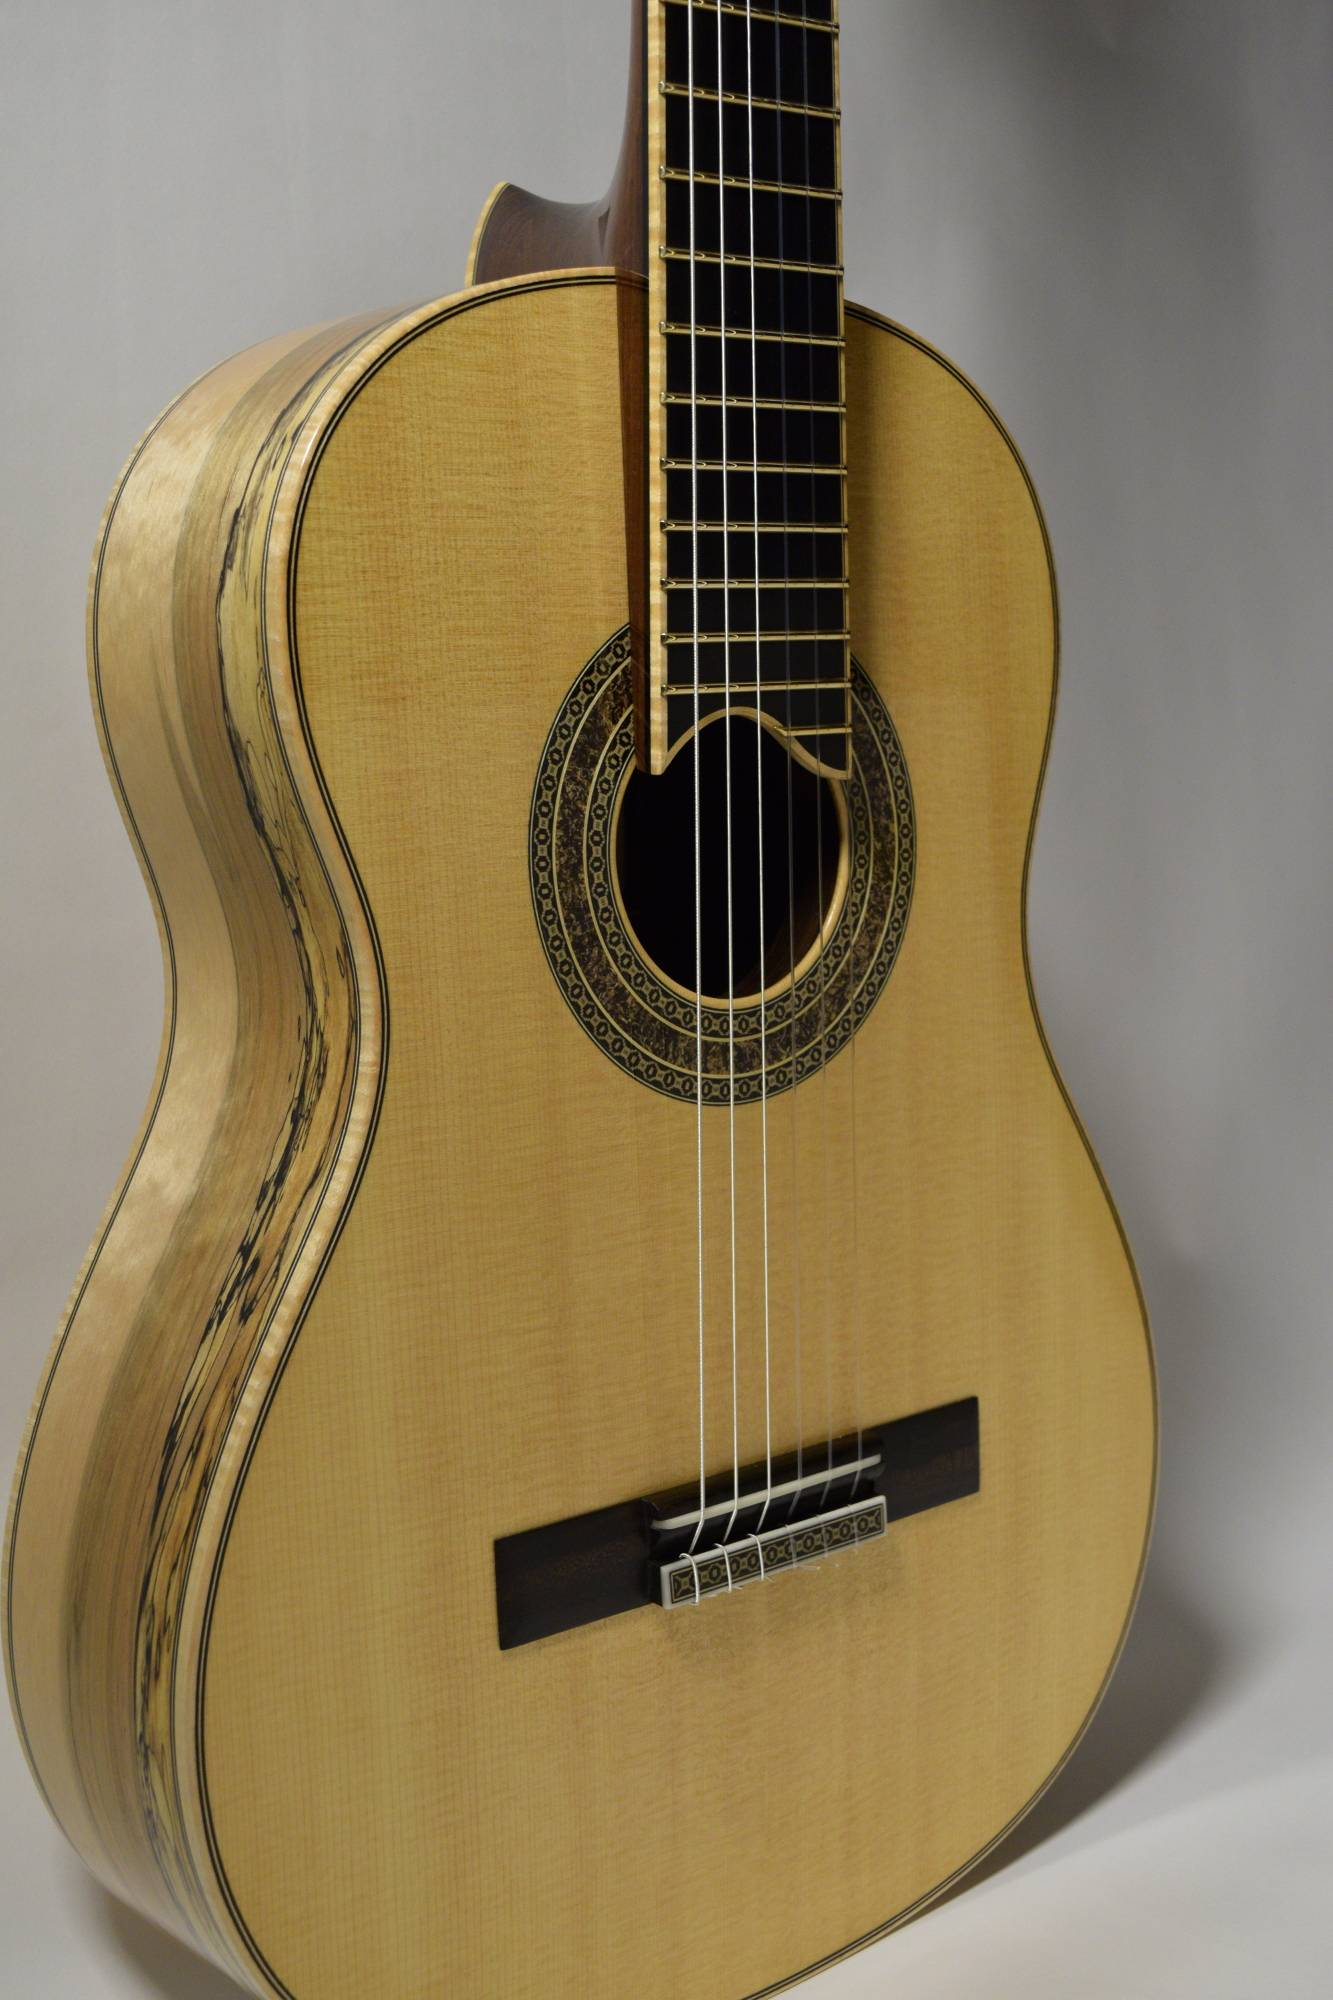 It became quickly clear that the guitar wouldn't be complete without a maple fretboard binding